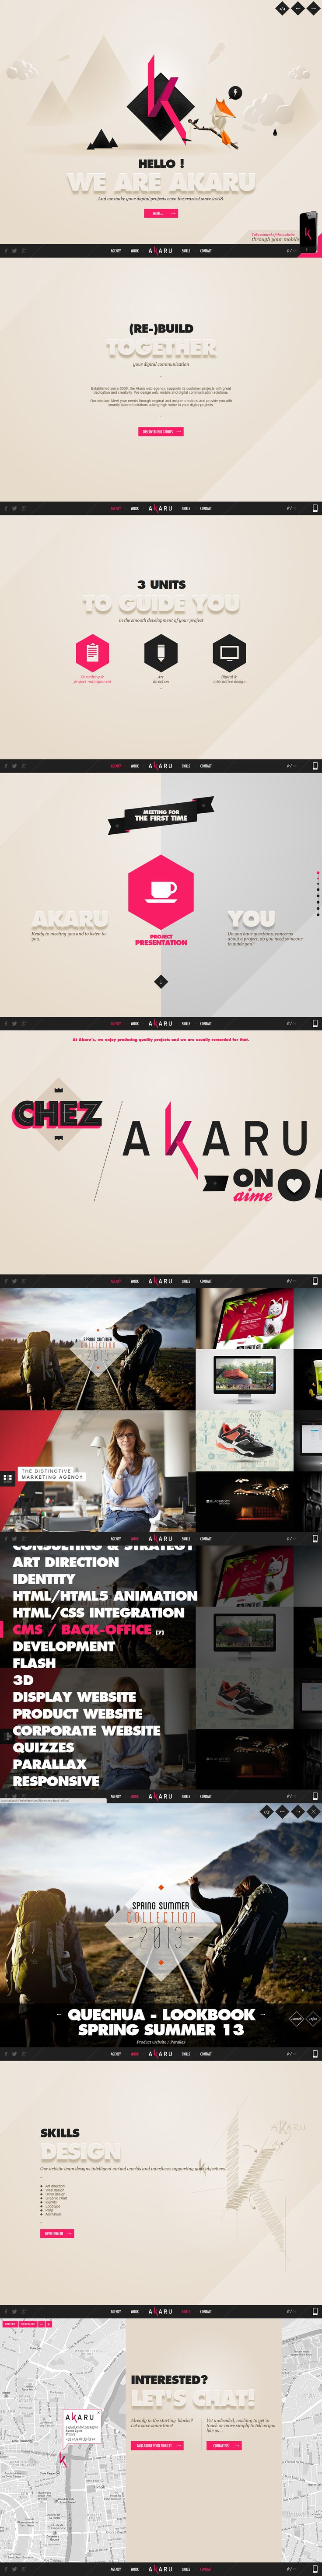 Akaru #Agency from #France #webdesign #website #webpage #onepagedesign #design http://www.akaru.fr/